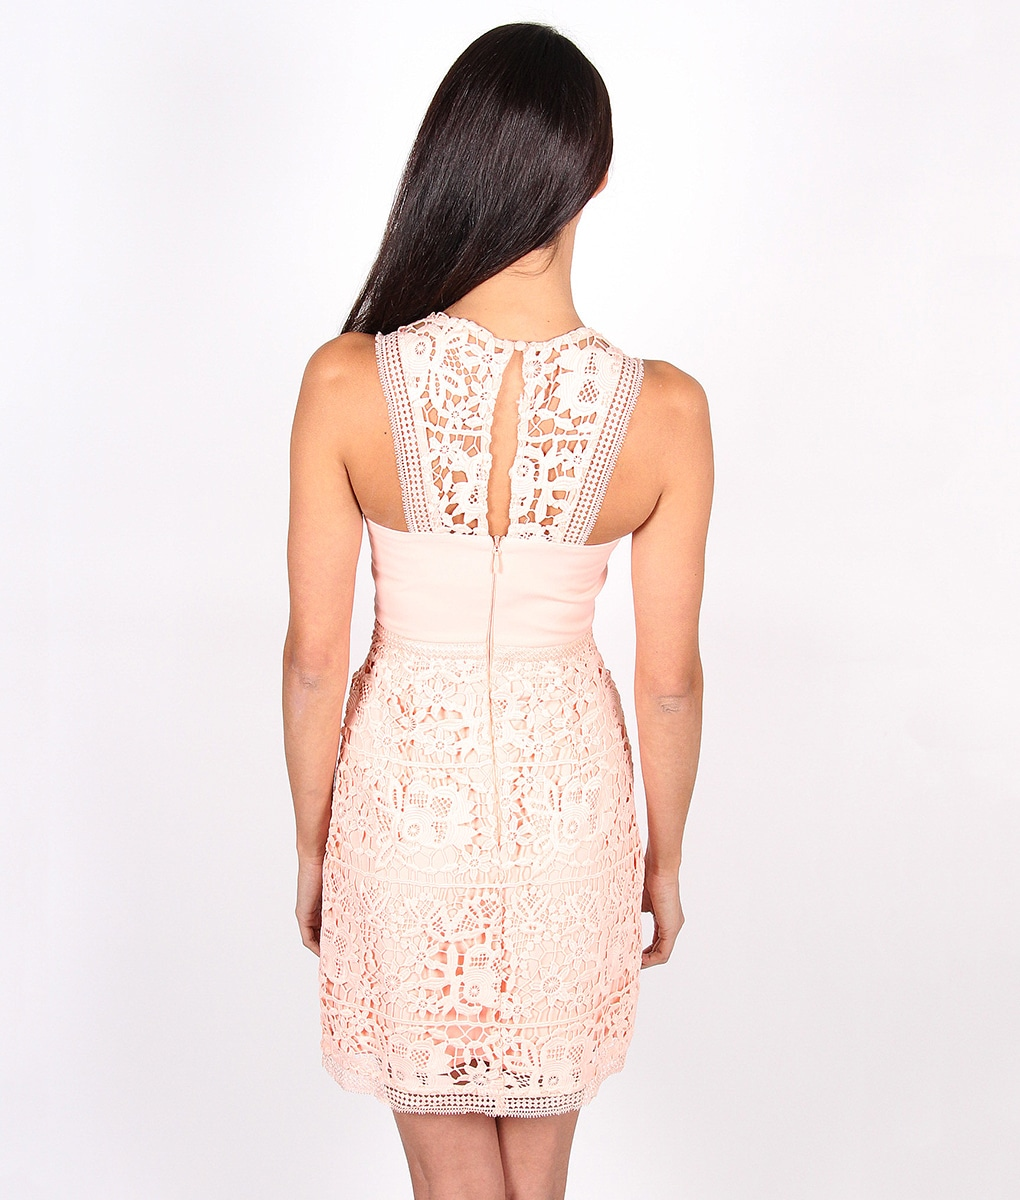 Alila-Peach-Lace-Dress-for-wedding-by-Lumier-by-Bariano-back